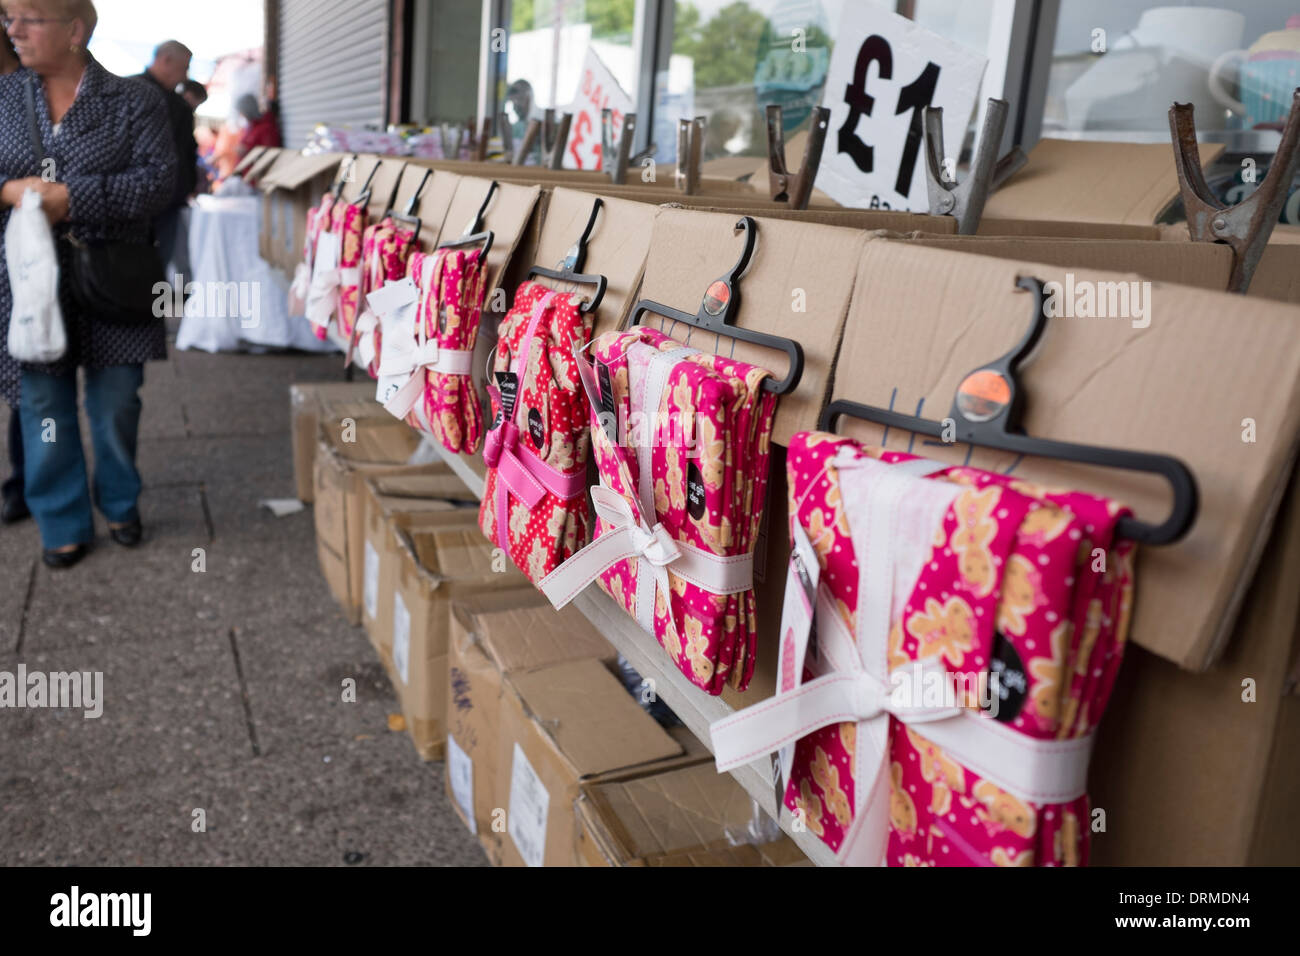 Market Geopic Stockfotos & Market Geopic Bilder - Alamy